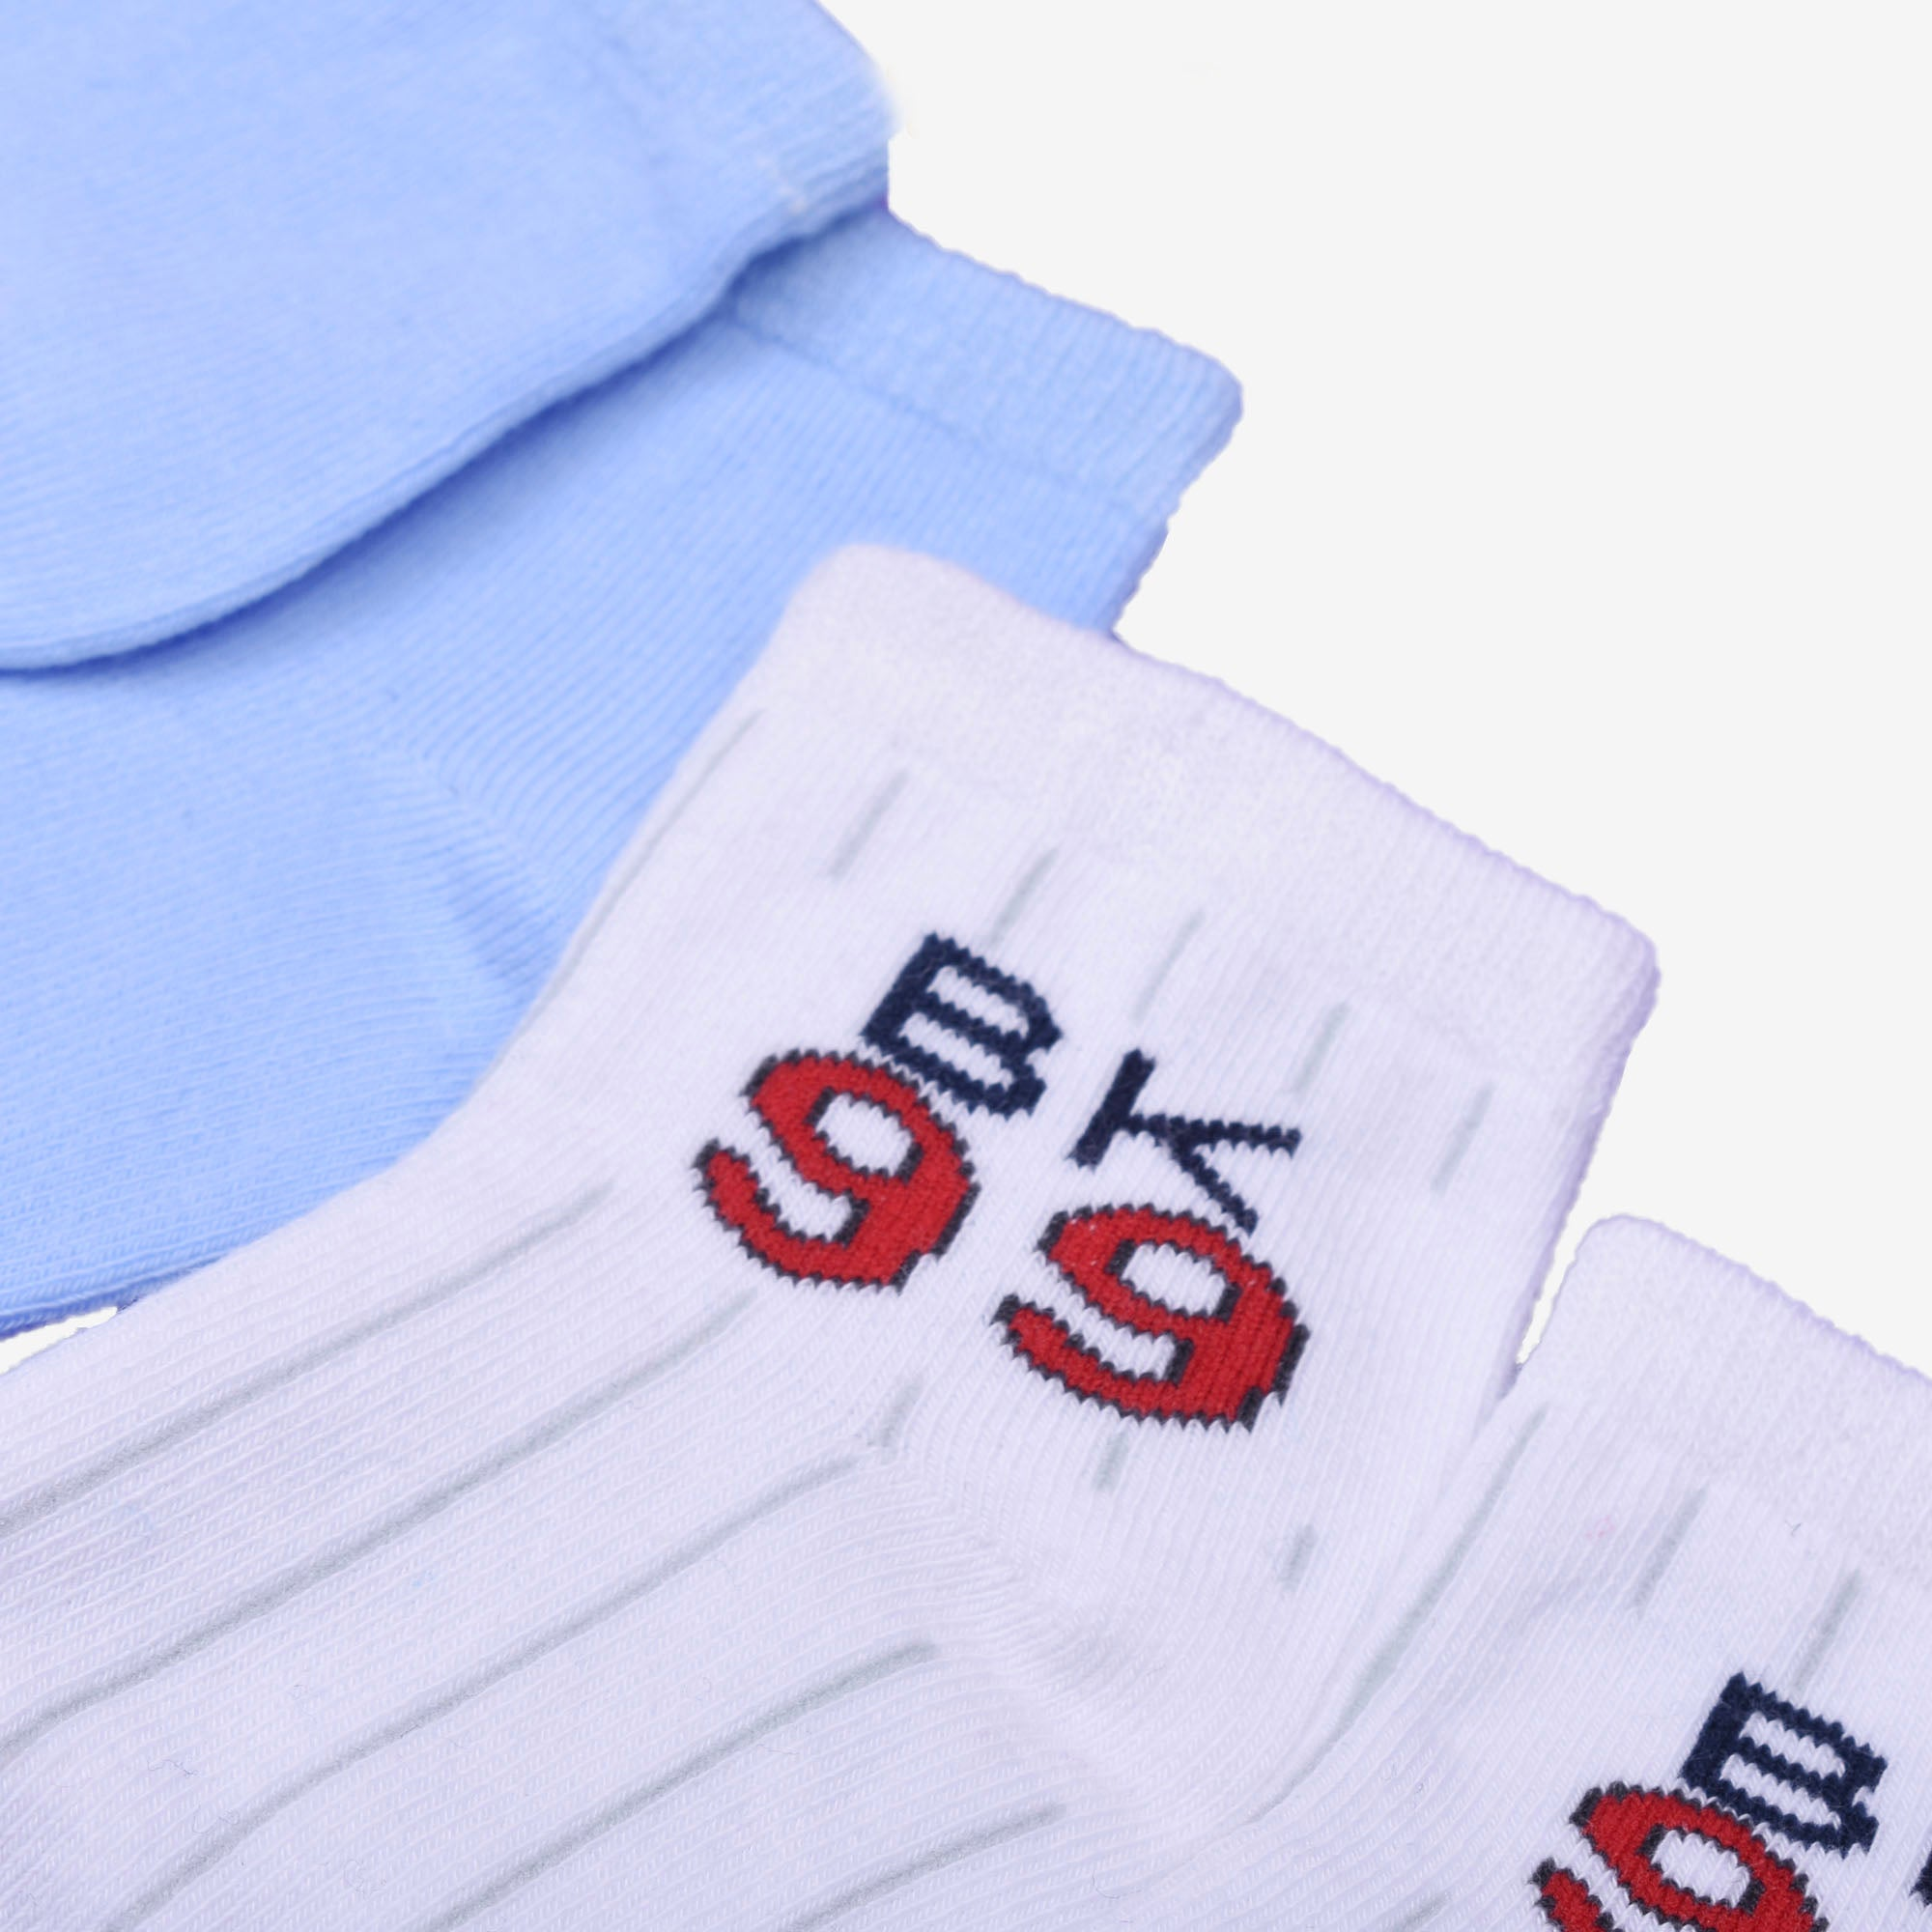 Assorted Baby Blue Knit Ankle Socks 2 in 1 pack